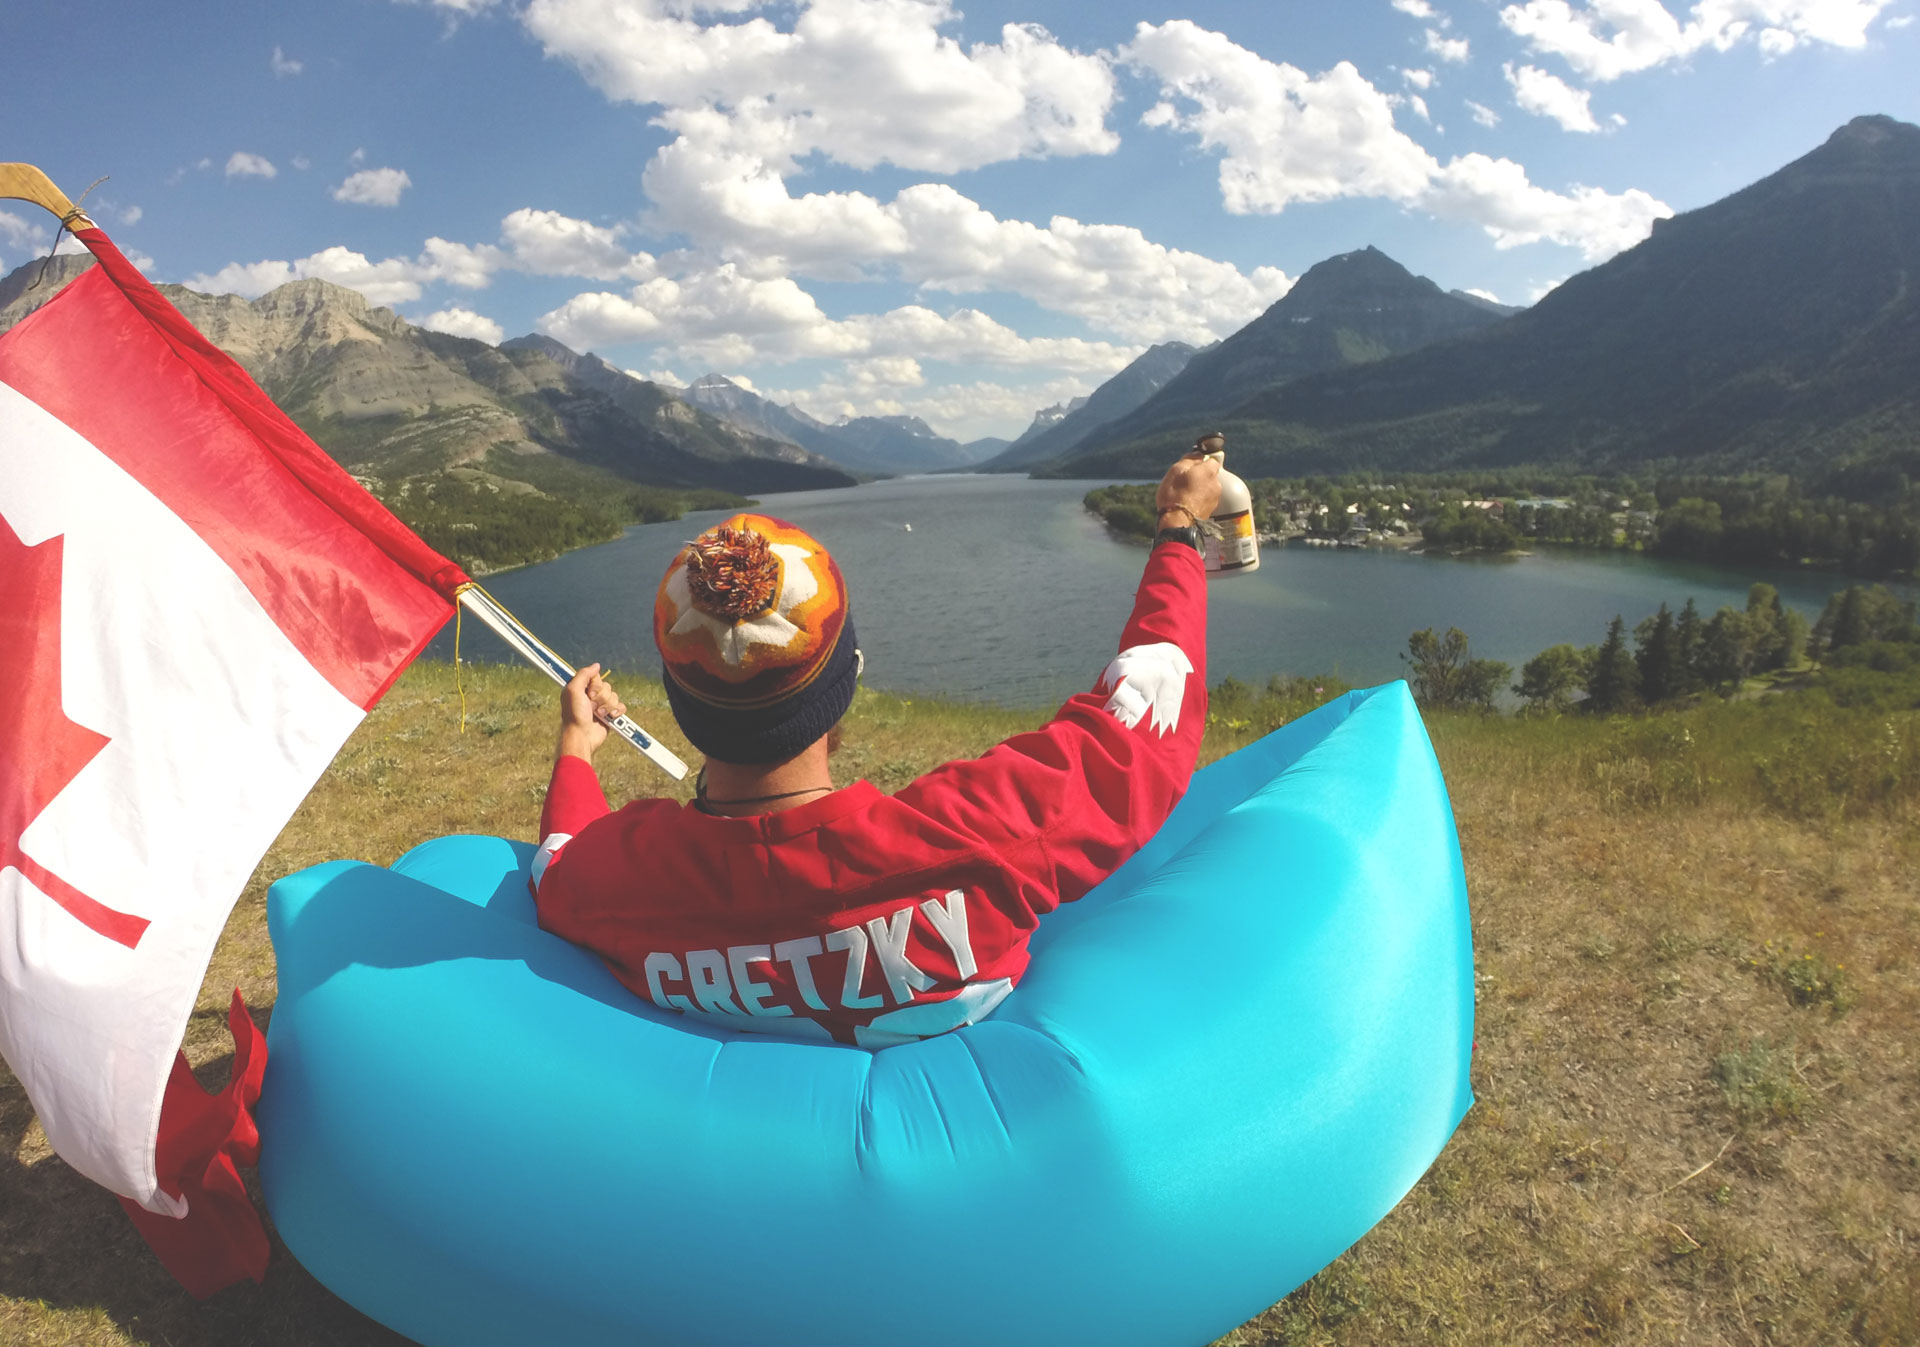 Views of Waterton Lakes National Park